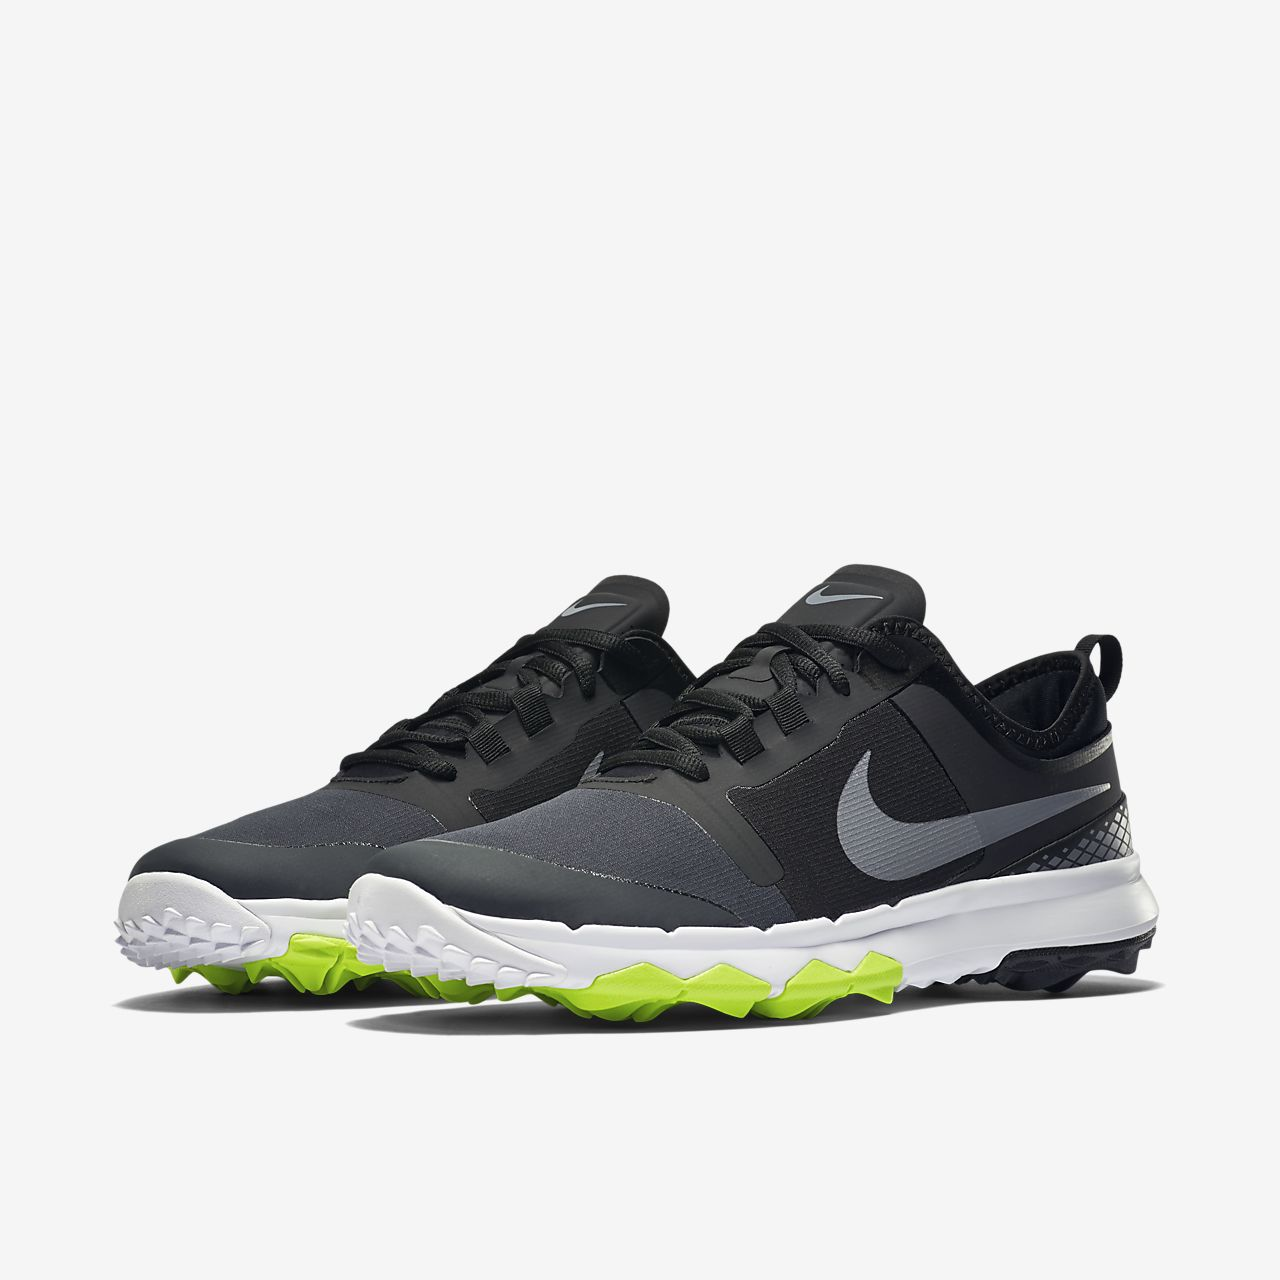 ... Nike FI Impact 2 Men's Golf Shoe